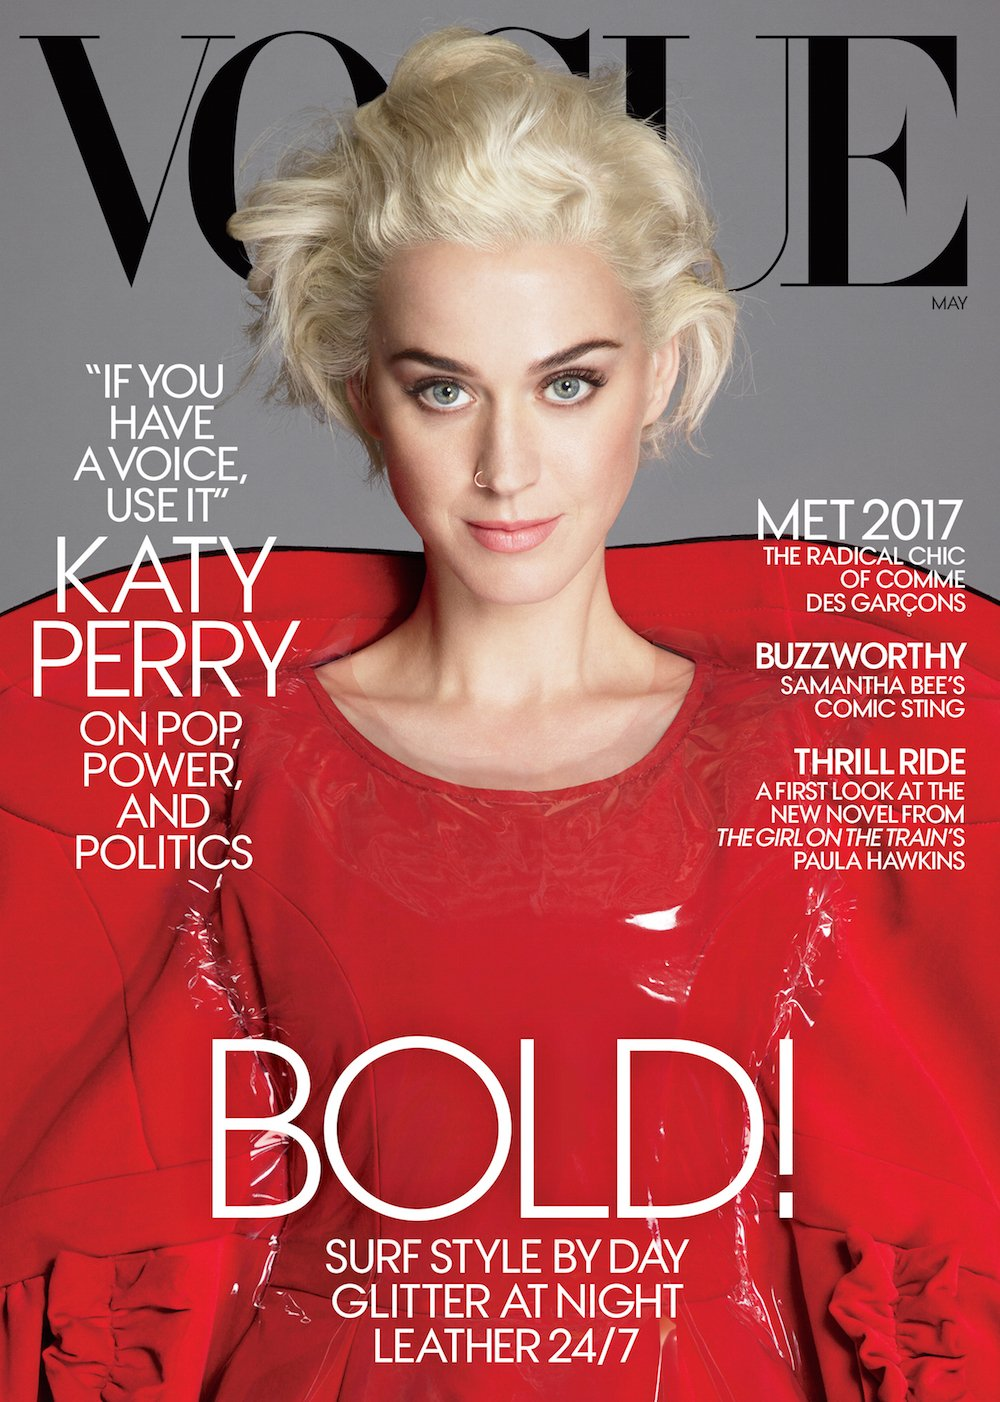 <b>MAY U.S. VOGUE: KATY...</b>